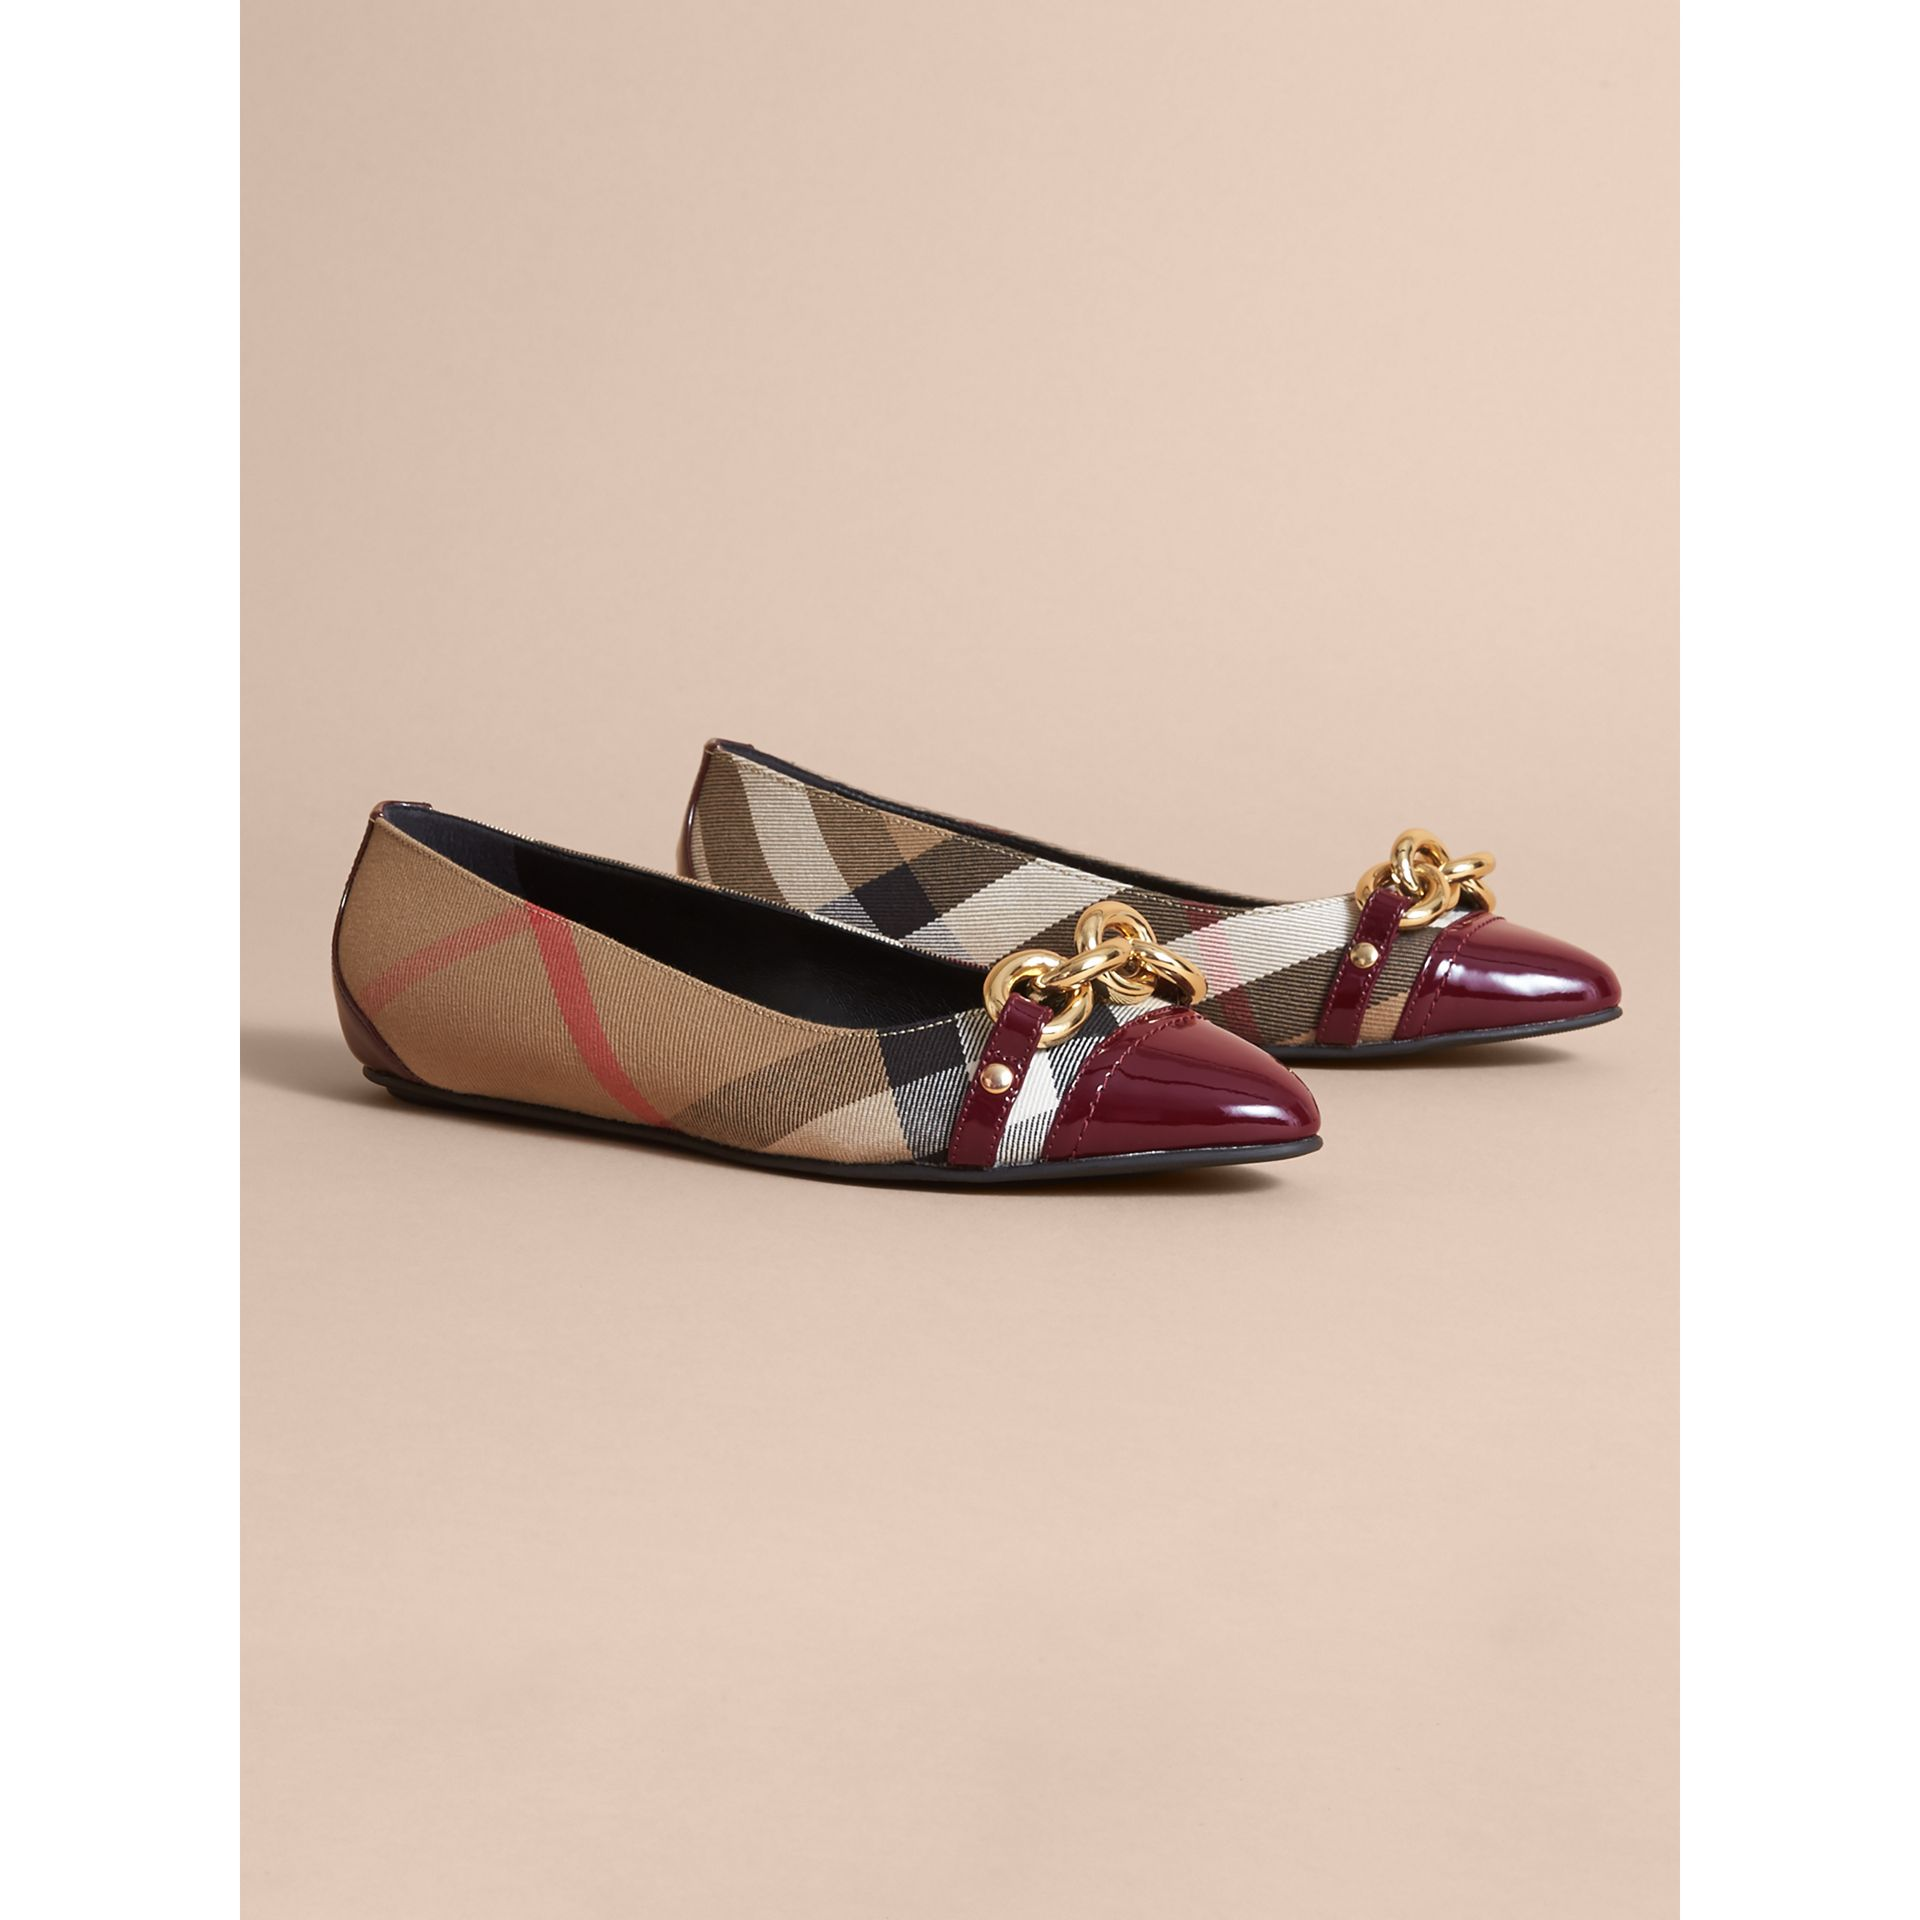 Chain Detail House Check and Patent Leather Ballerinas - gallery image 1